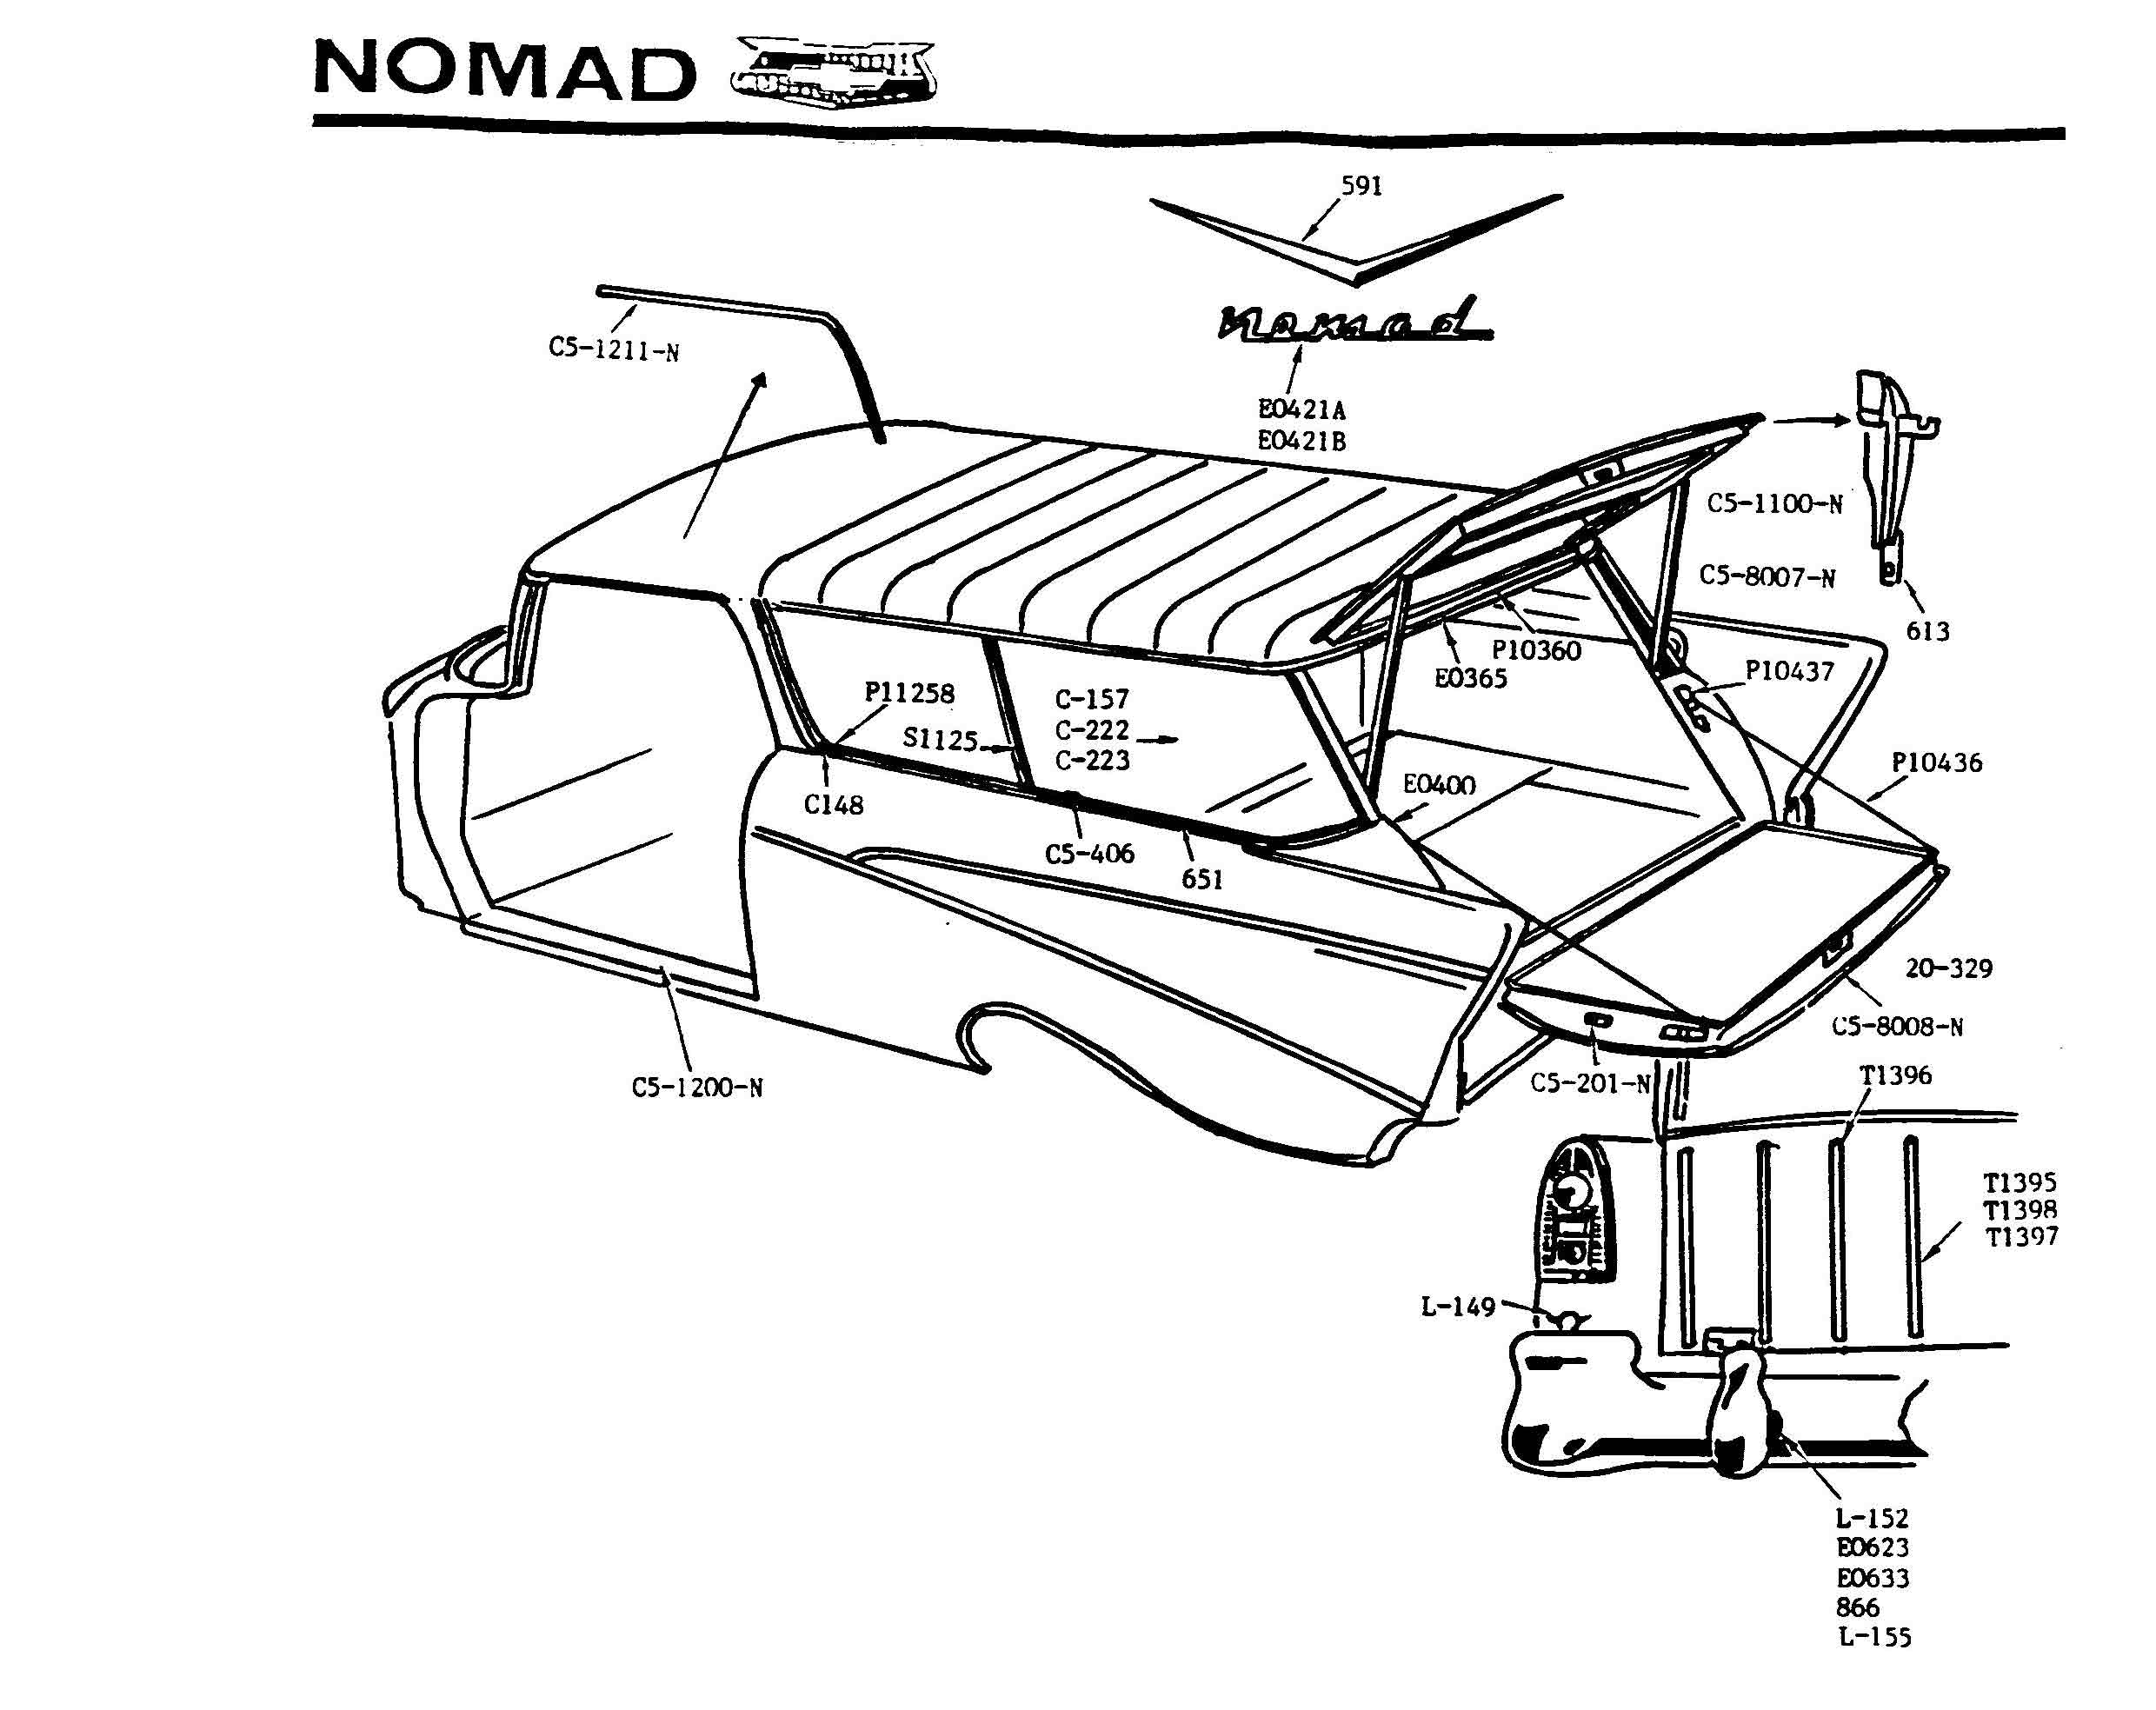 55 Chevy Drawing At Free For Personal Use Bel Air 57 Tailgate Diagram 2480x1967 Ralph Roberts Classic Supply